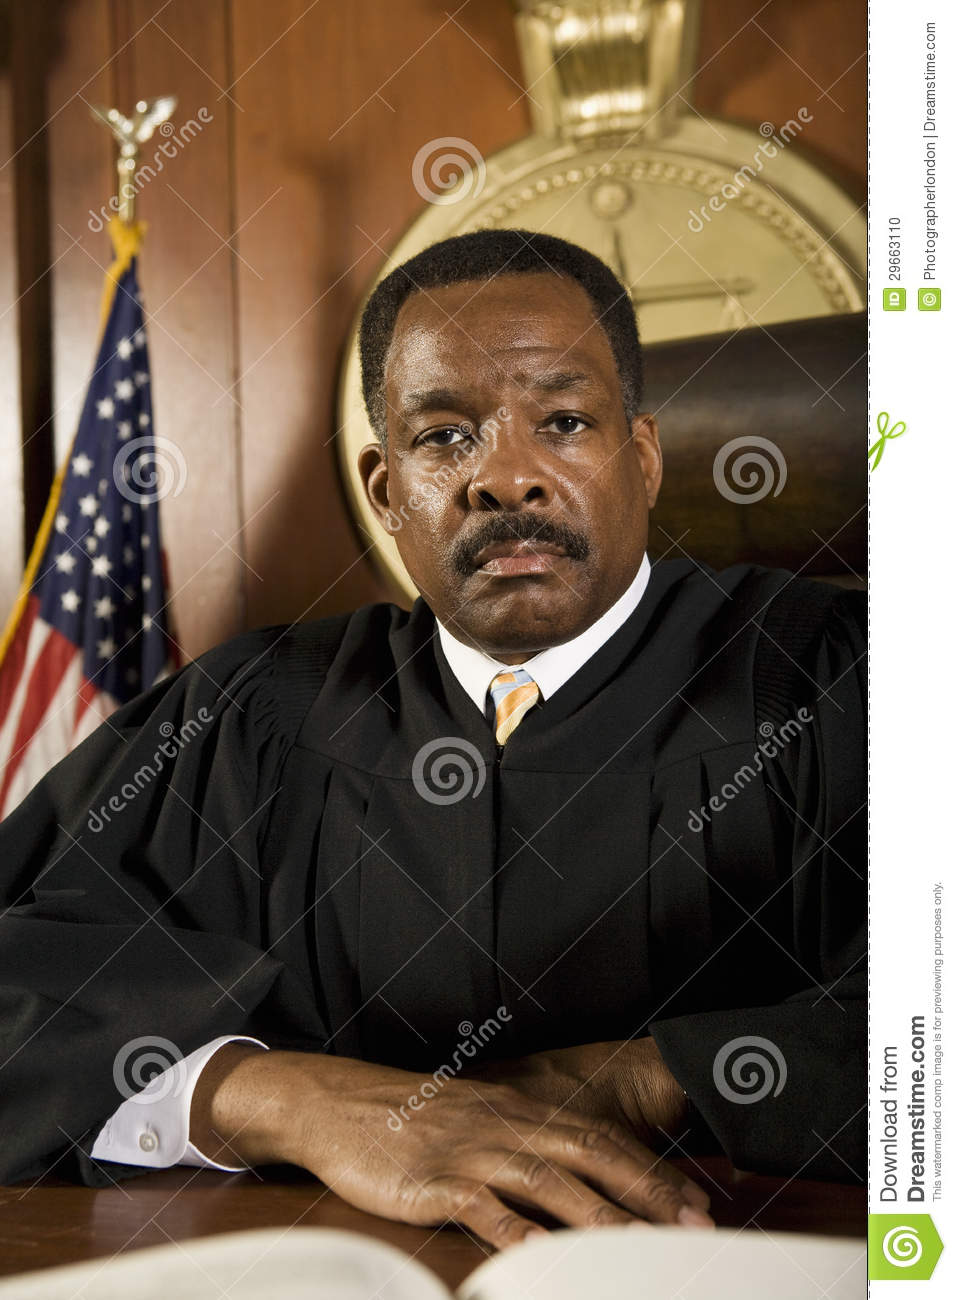 Judge Sitting In The Courtroom Royalty-Free Stock Image ...